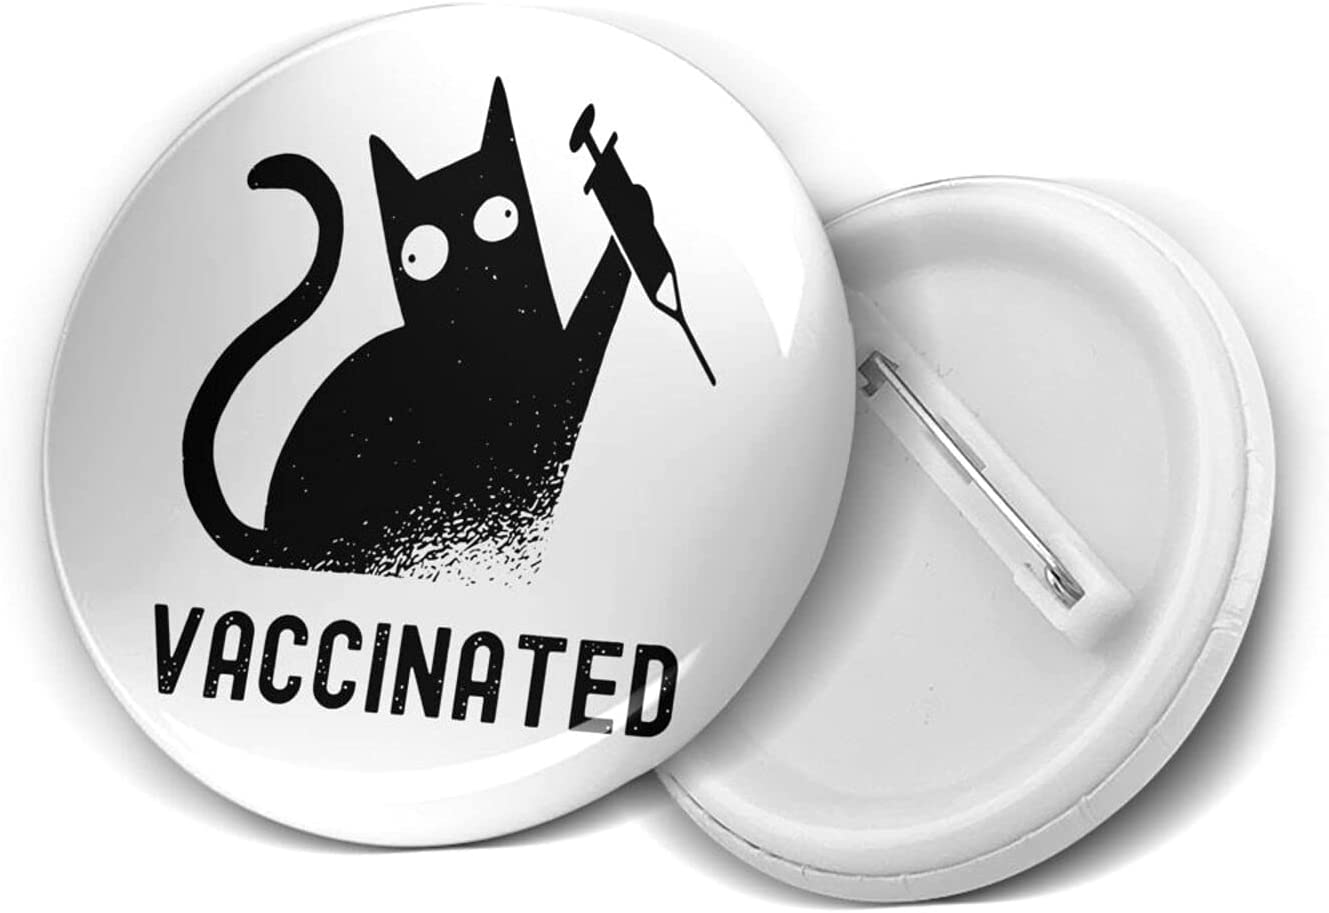 Vaccinated - Funny Cat Lovers 1.2/1.8/2.3 Inch Round Pins Brooches Button Medal Tinplate Large Pin Emblem Adult Children Pin Badges Decor for Backpacks Costume